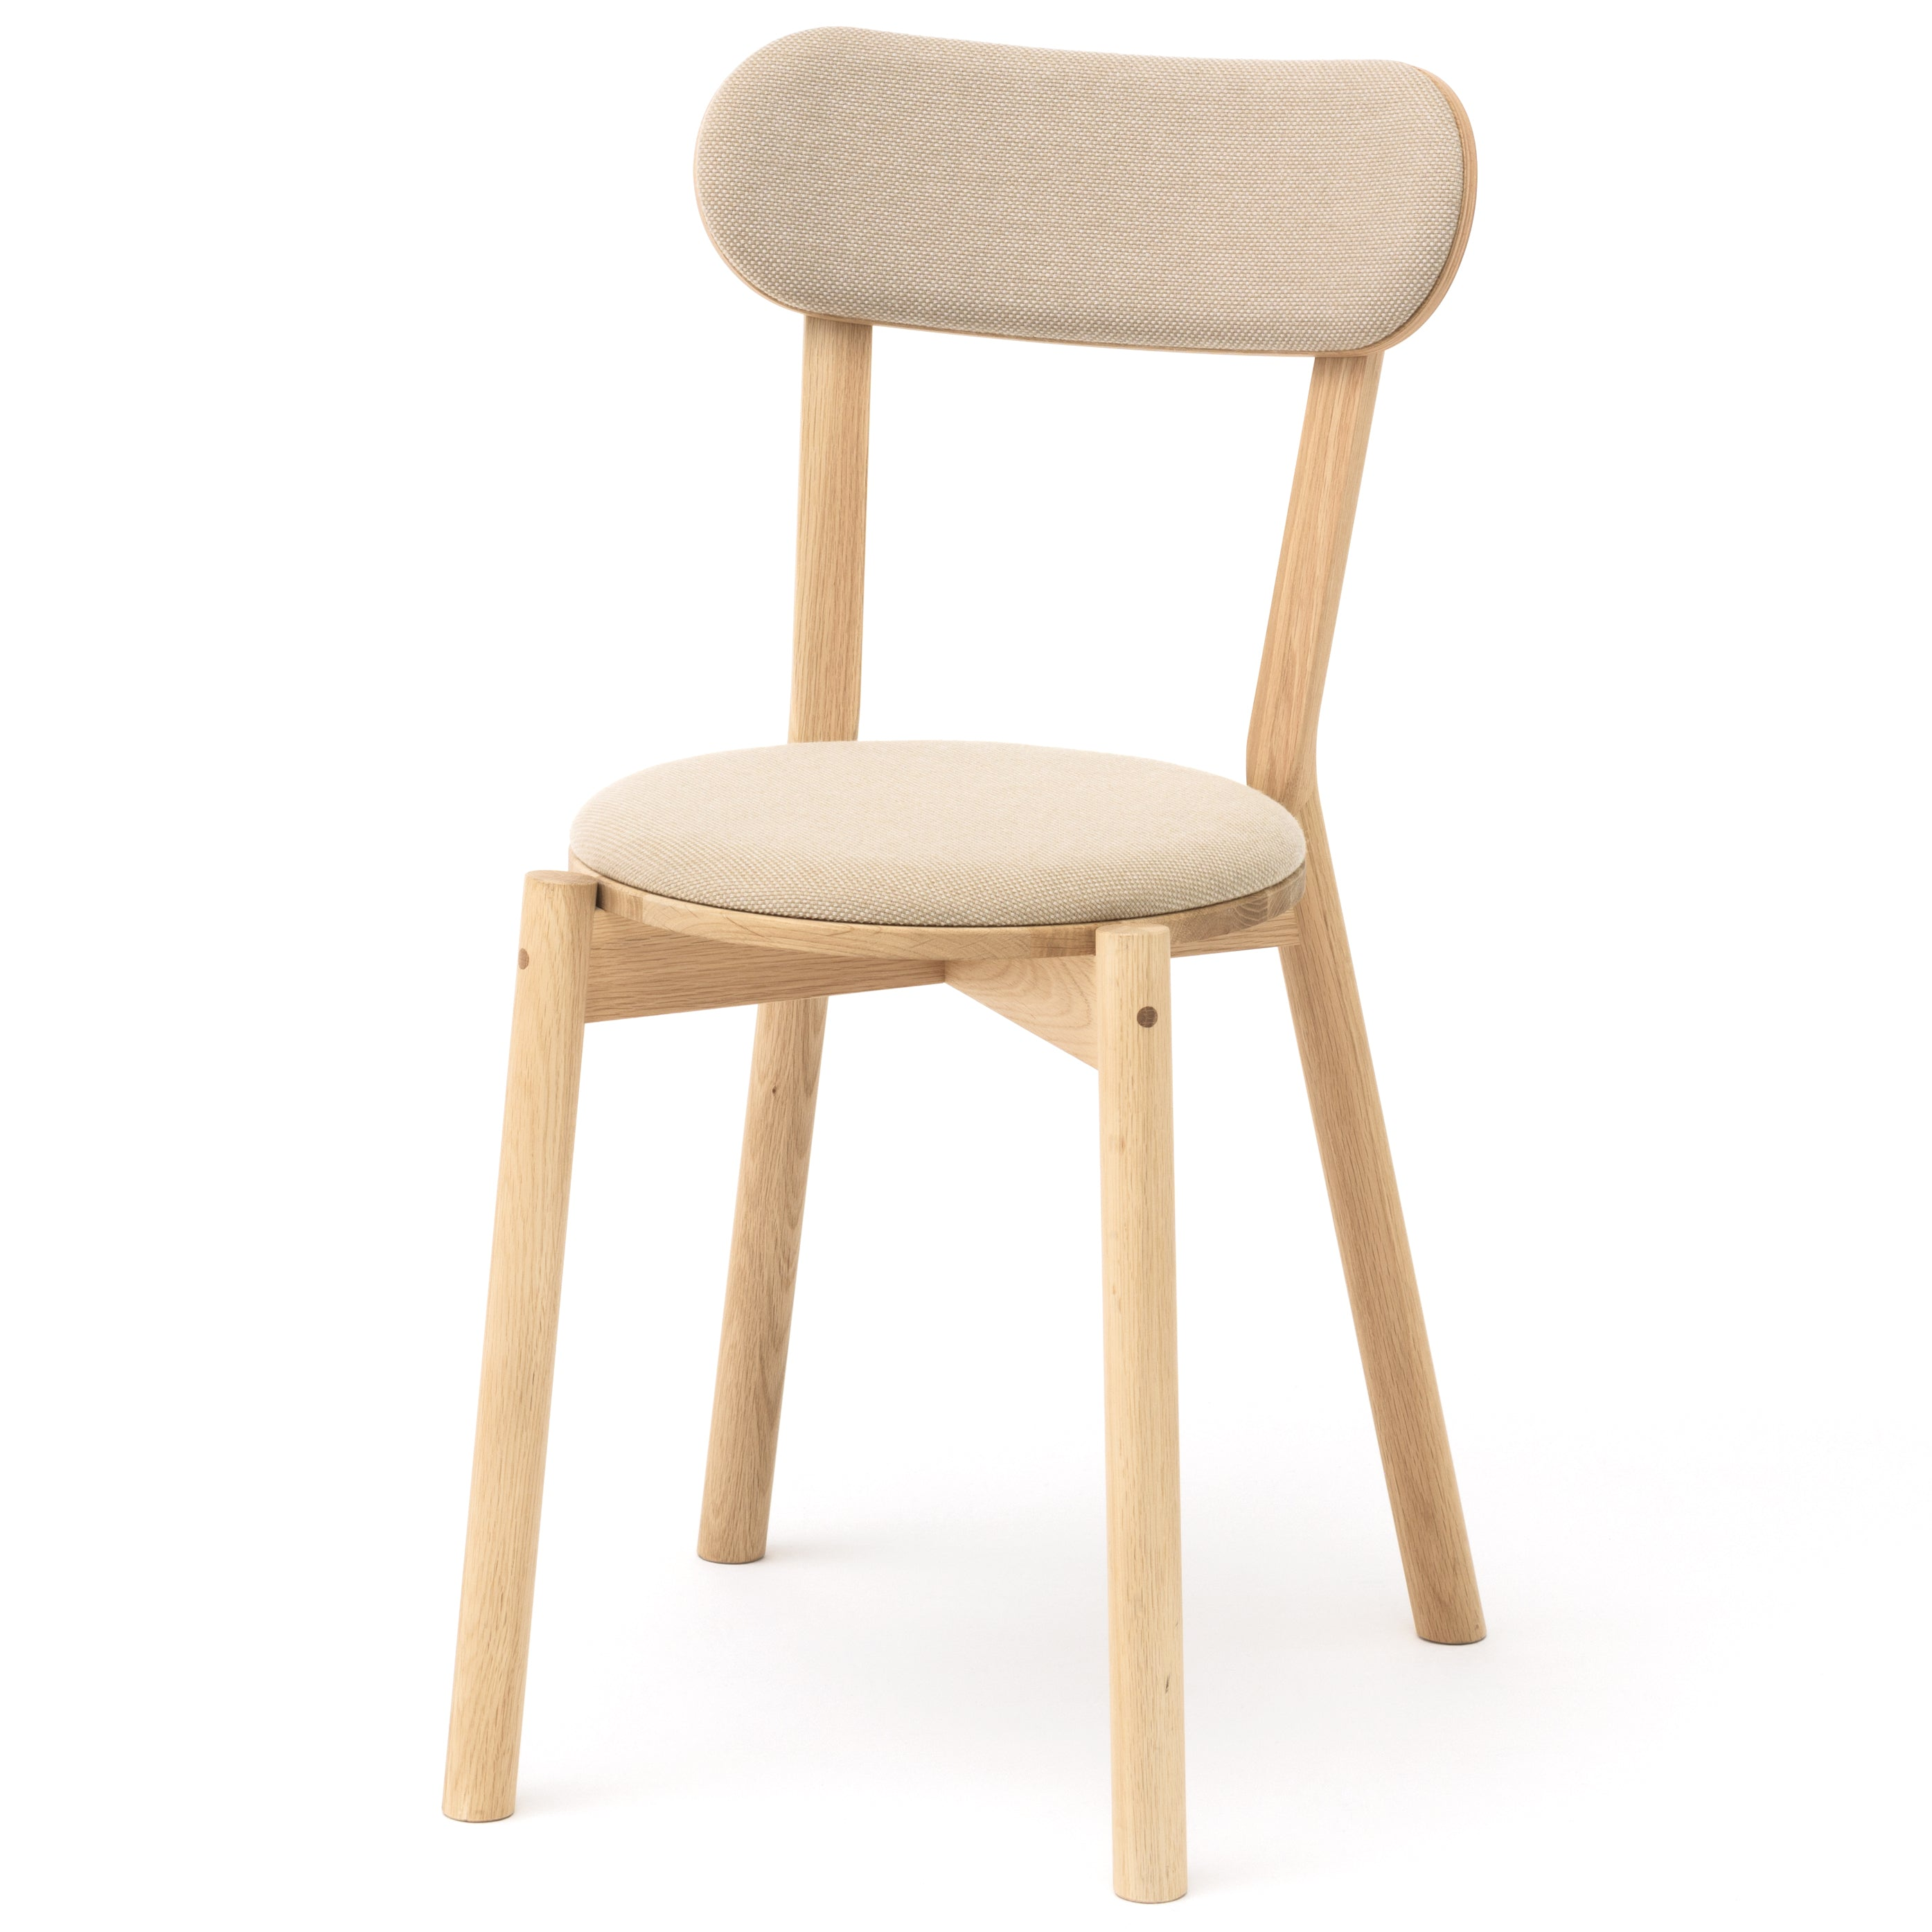 Castor Chair Pad: Natural Wood